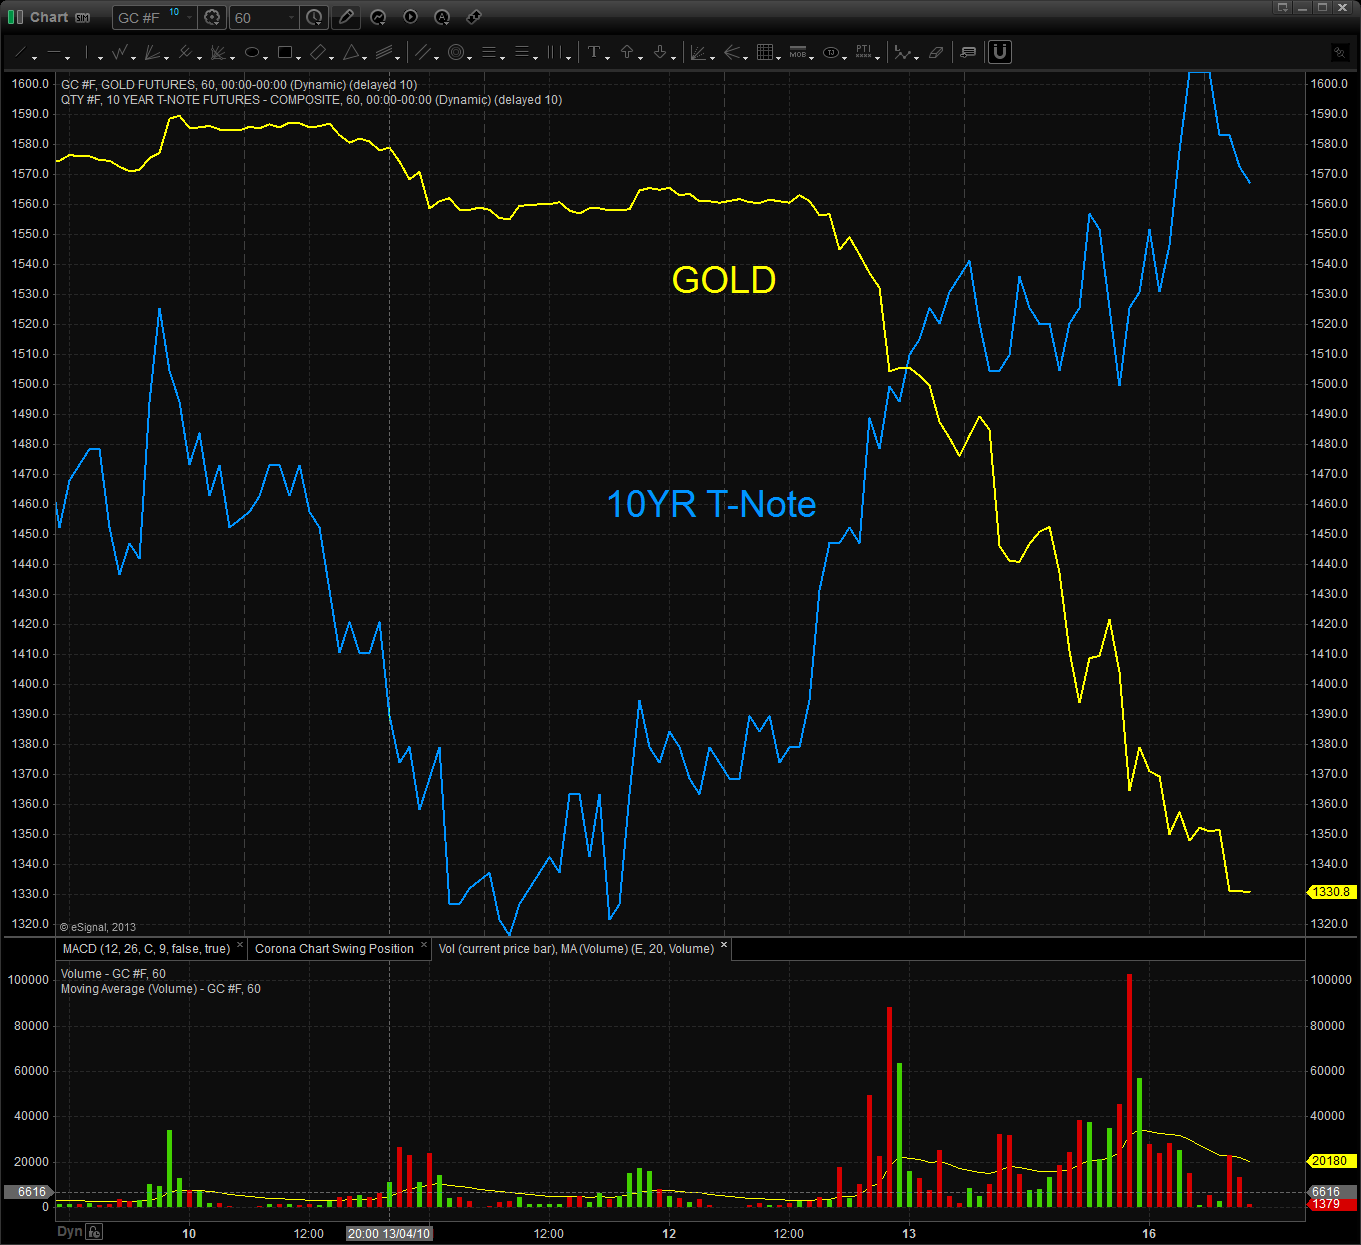 Gold vs 10yr T-Note